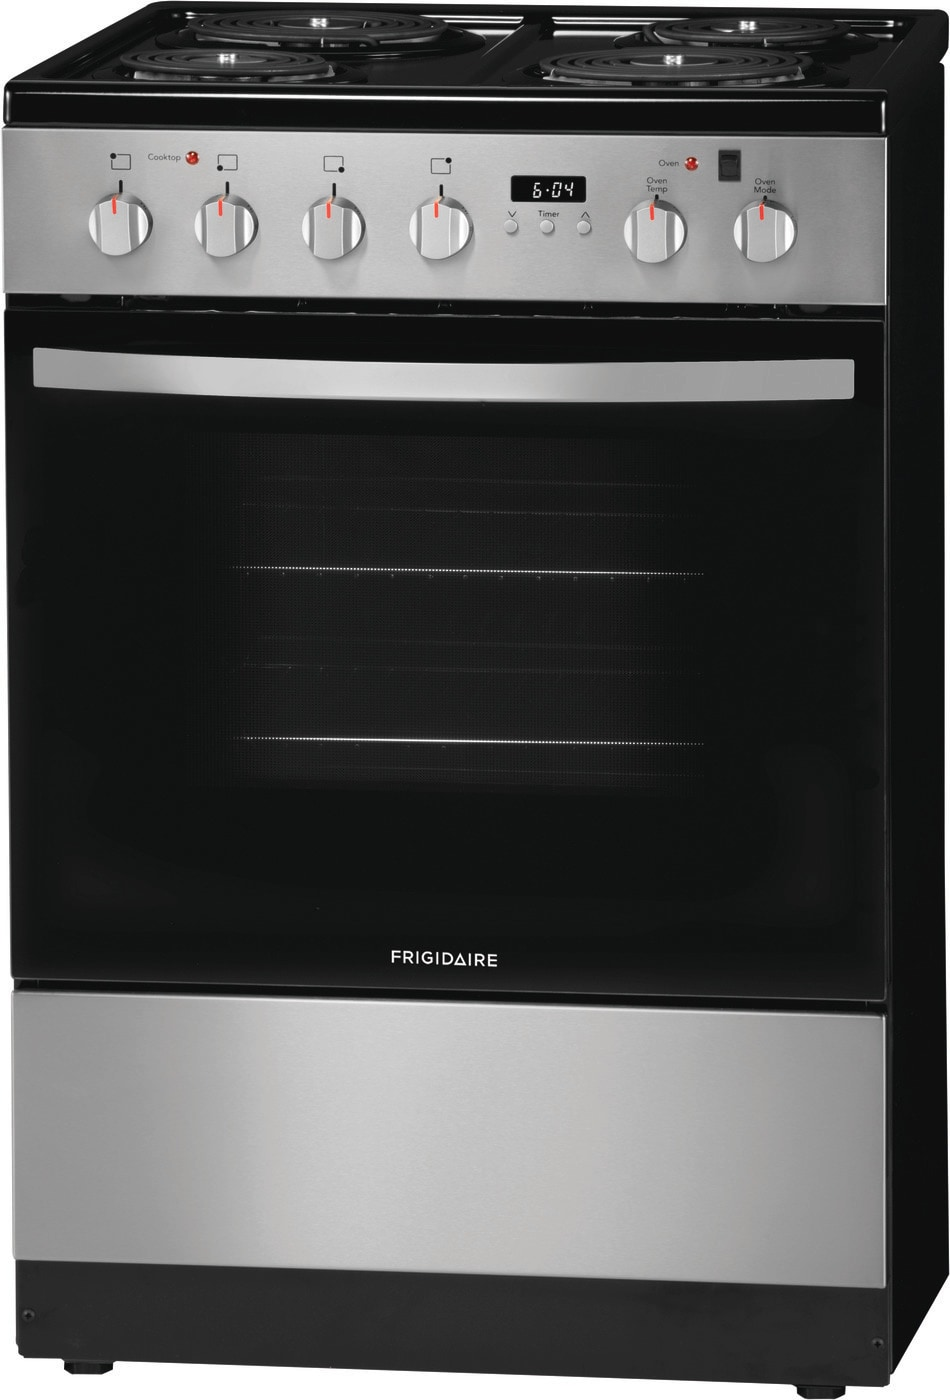 "24"" Freestanding Electric Range Stainless Steel FFEH2422US"